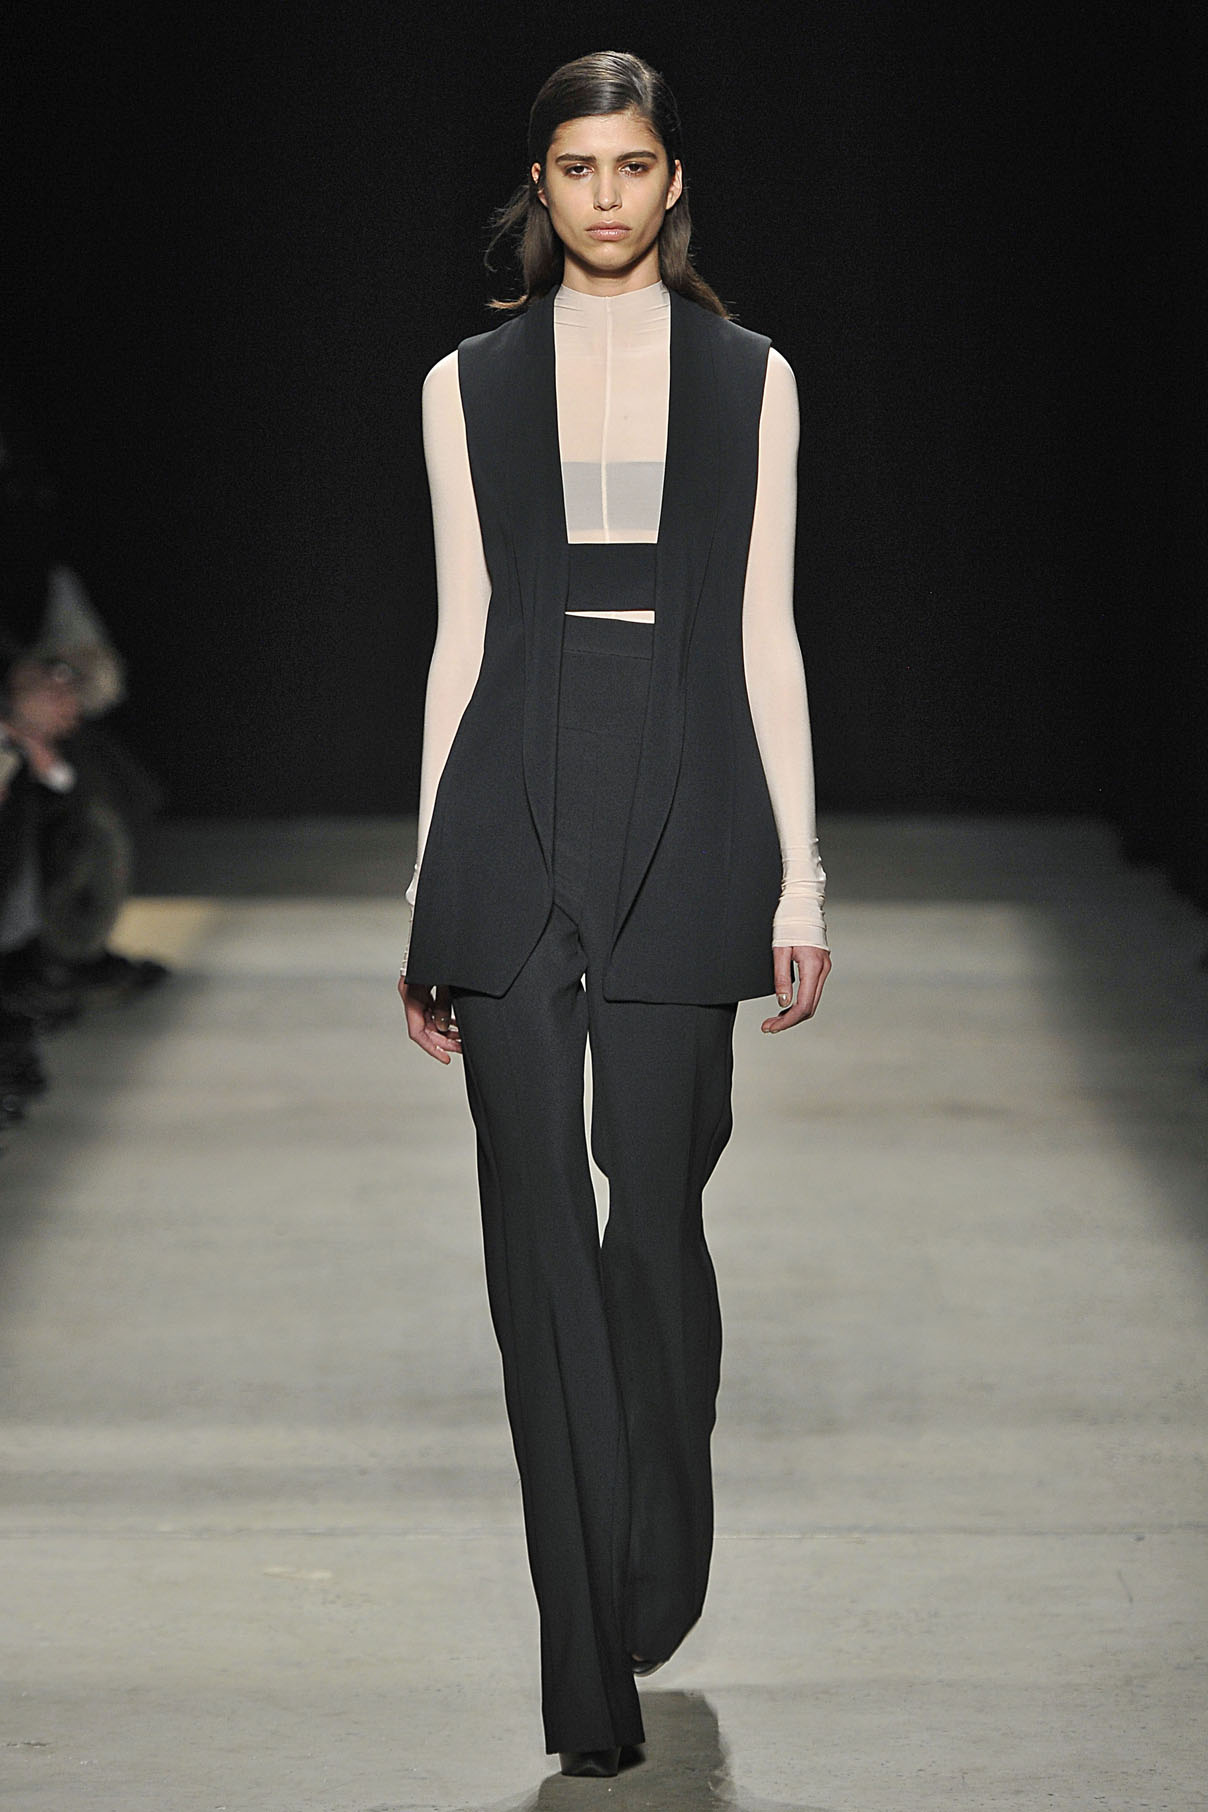 Look 5 Black crepe suit with nude sheer jersey top.